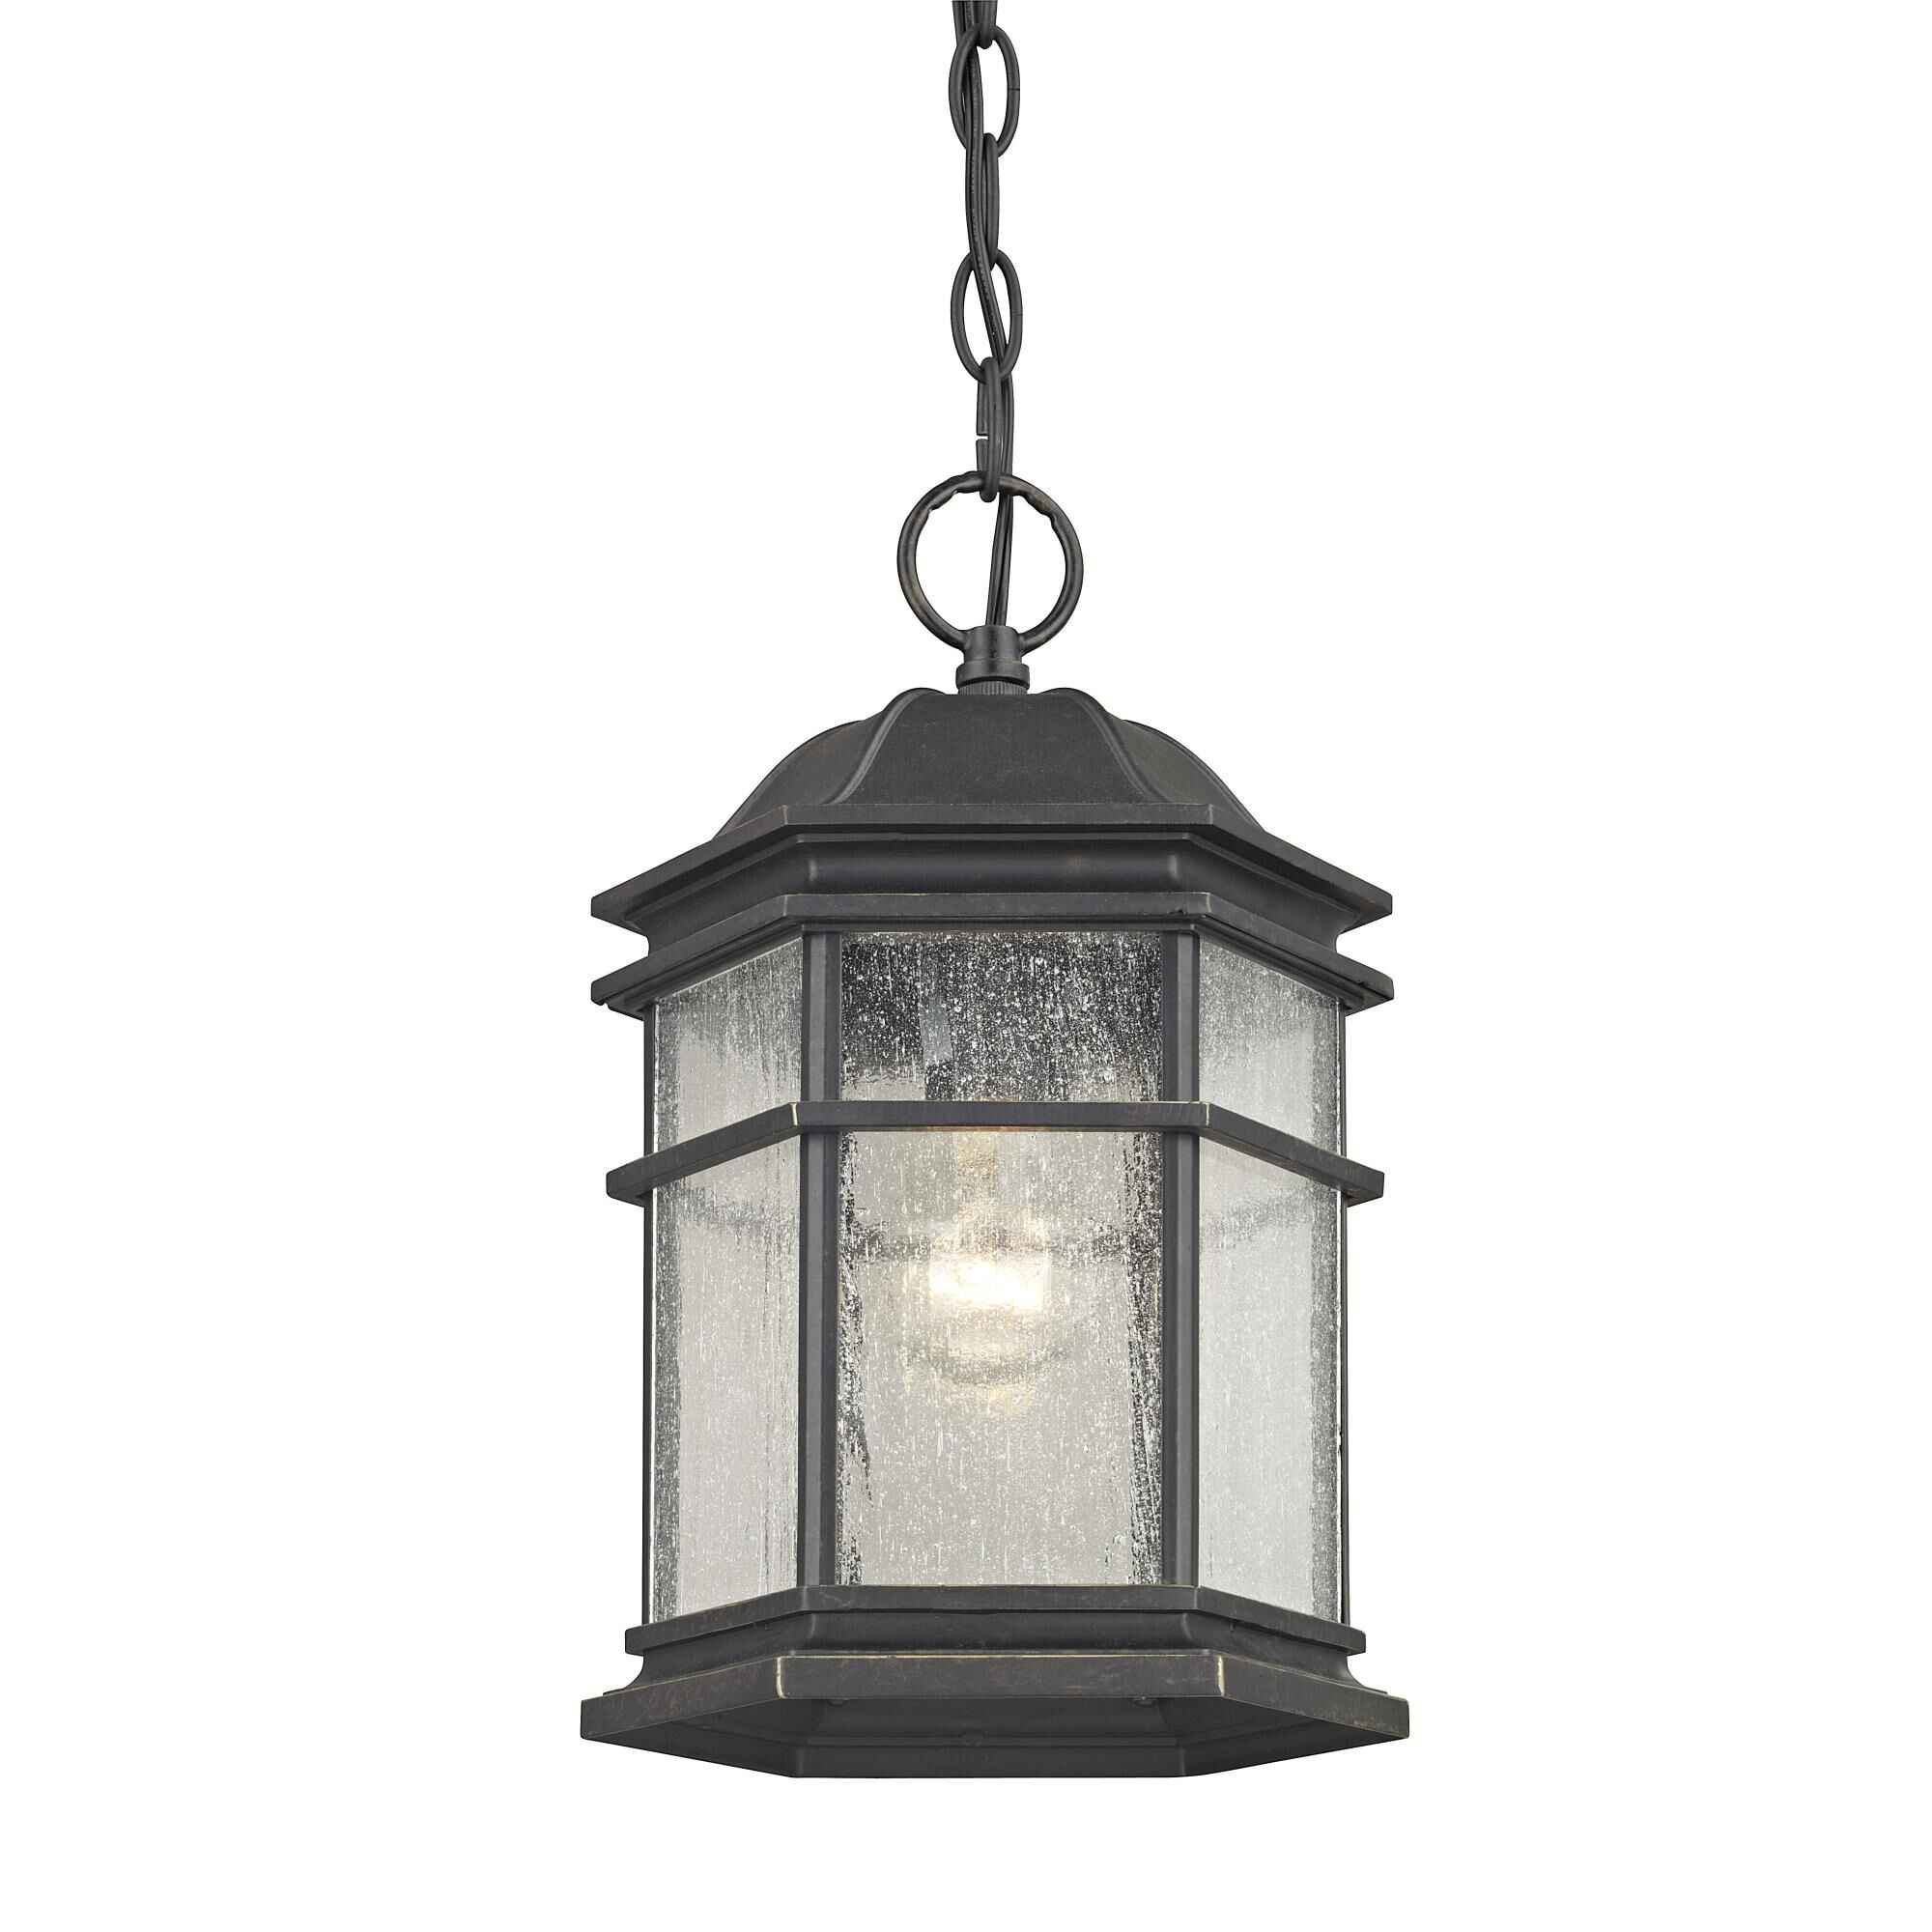 Dolan Designs Barlow 12 Inch Tall 1 Light Outdoor Hanging Lantern Barlow - 9232-68 - Traditional